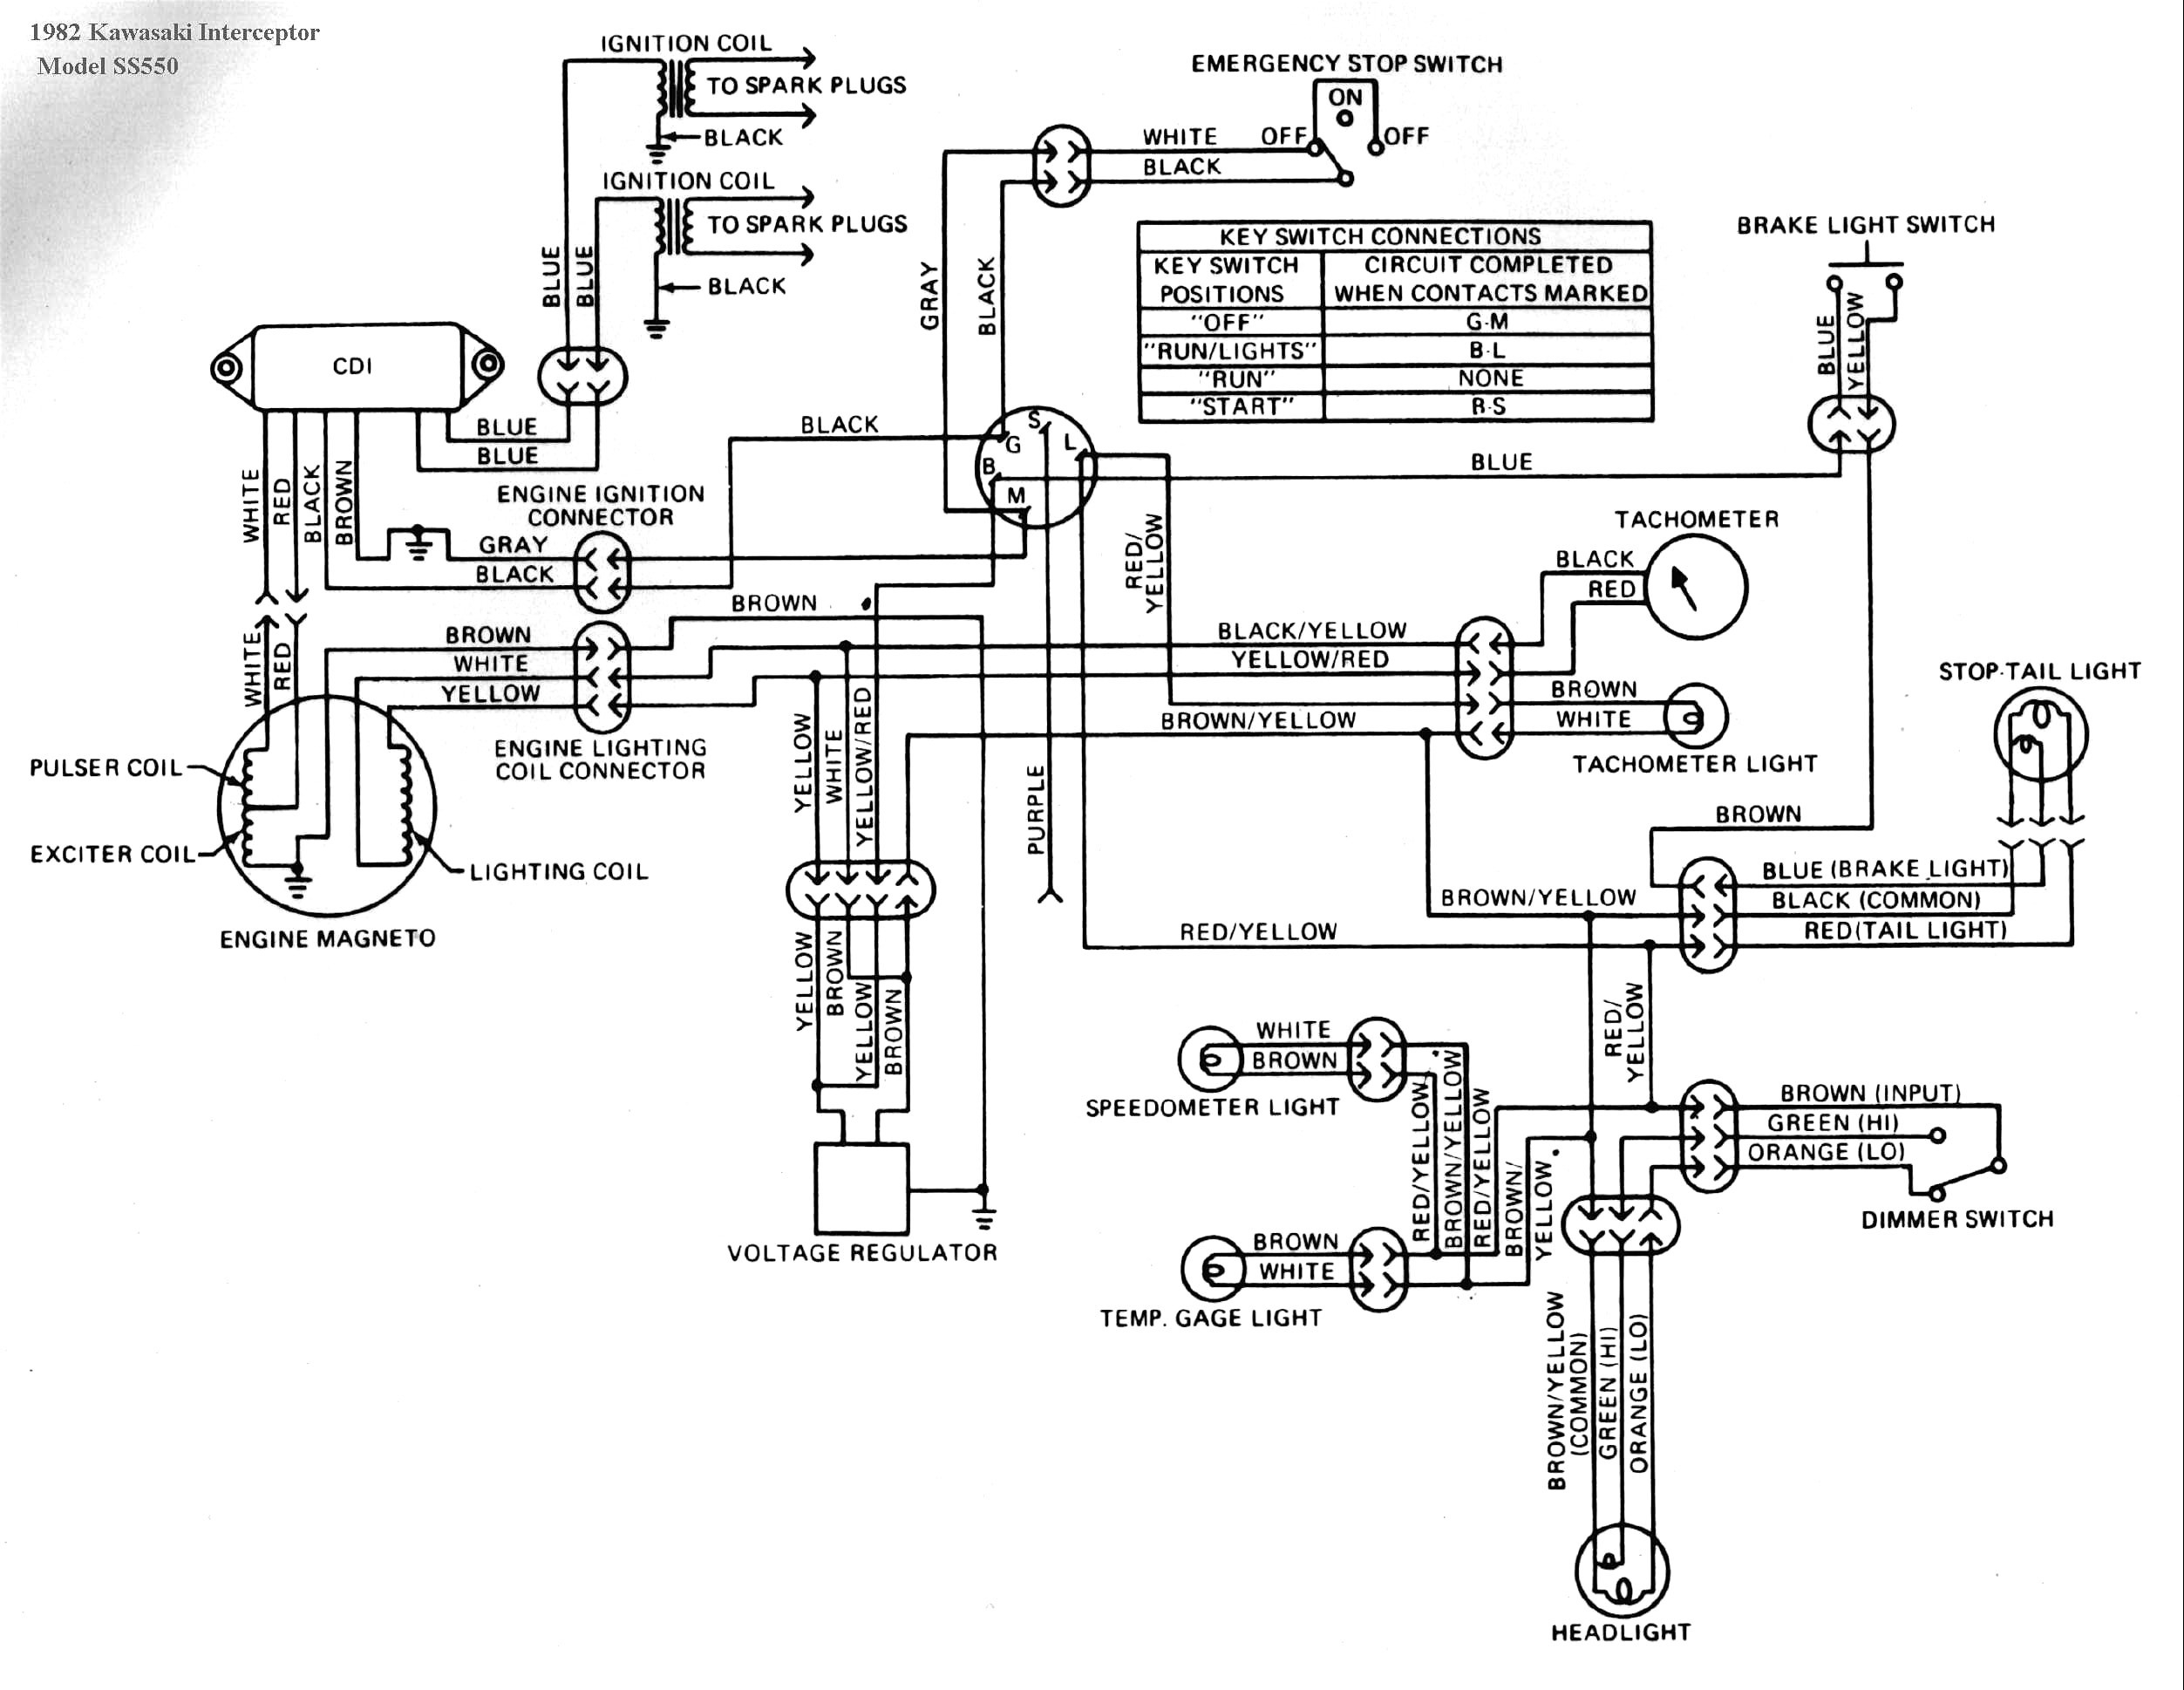 2002 Kawasaki Prairie 300 Wiring Diagram | Wiring Diagram on kawasaki 300 accessories, kawasaki 650 prairie wiring diagram, kawasaki 300 exhaust, kawasaki 300 fuel pump, kawasaki 185 wiring-diagram, kawasaki bayou wiring diagram, 94 kawasaki motorcycle wiring diagram, kawasaki 1996 wiring harness diagrams, kawasaki 220 wiring diagram, kawasaki cdi wiring diagram, kawasaki bayou 220 wiring, kawasaki 360 wiring diagram, kawasaki 300 headlights, kawasaki brute force wiring diagrams, kawasaki 300 forum, kawasaki bayou battery wiring, kawasaki mule wiring-diagram, kawasaki x2 wiring diagram, kawasaki 400 wiring diagram, kawasaki 300 power,